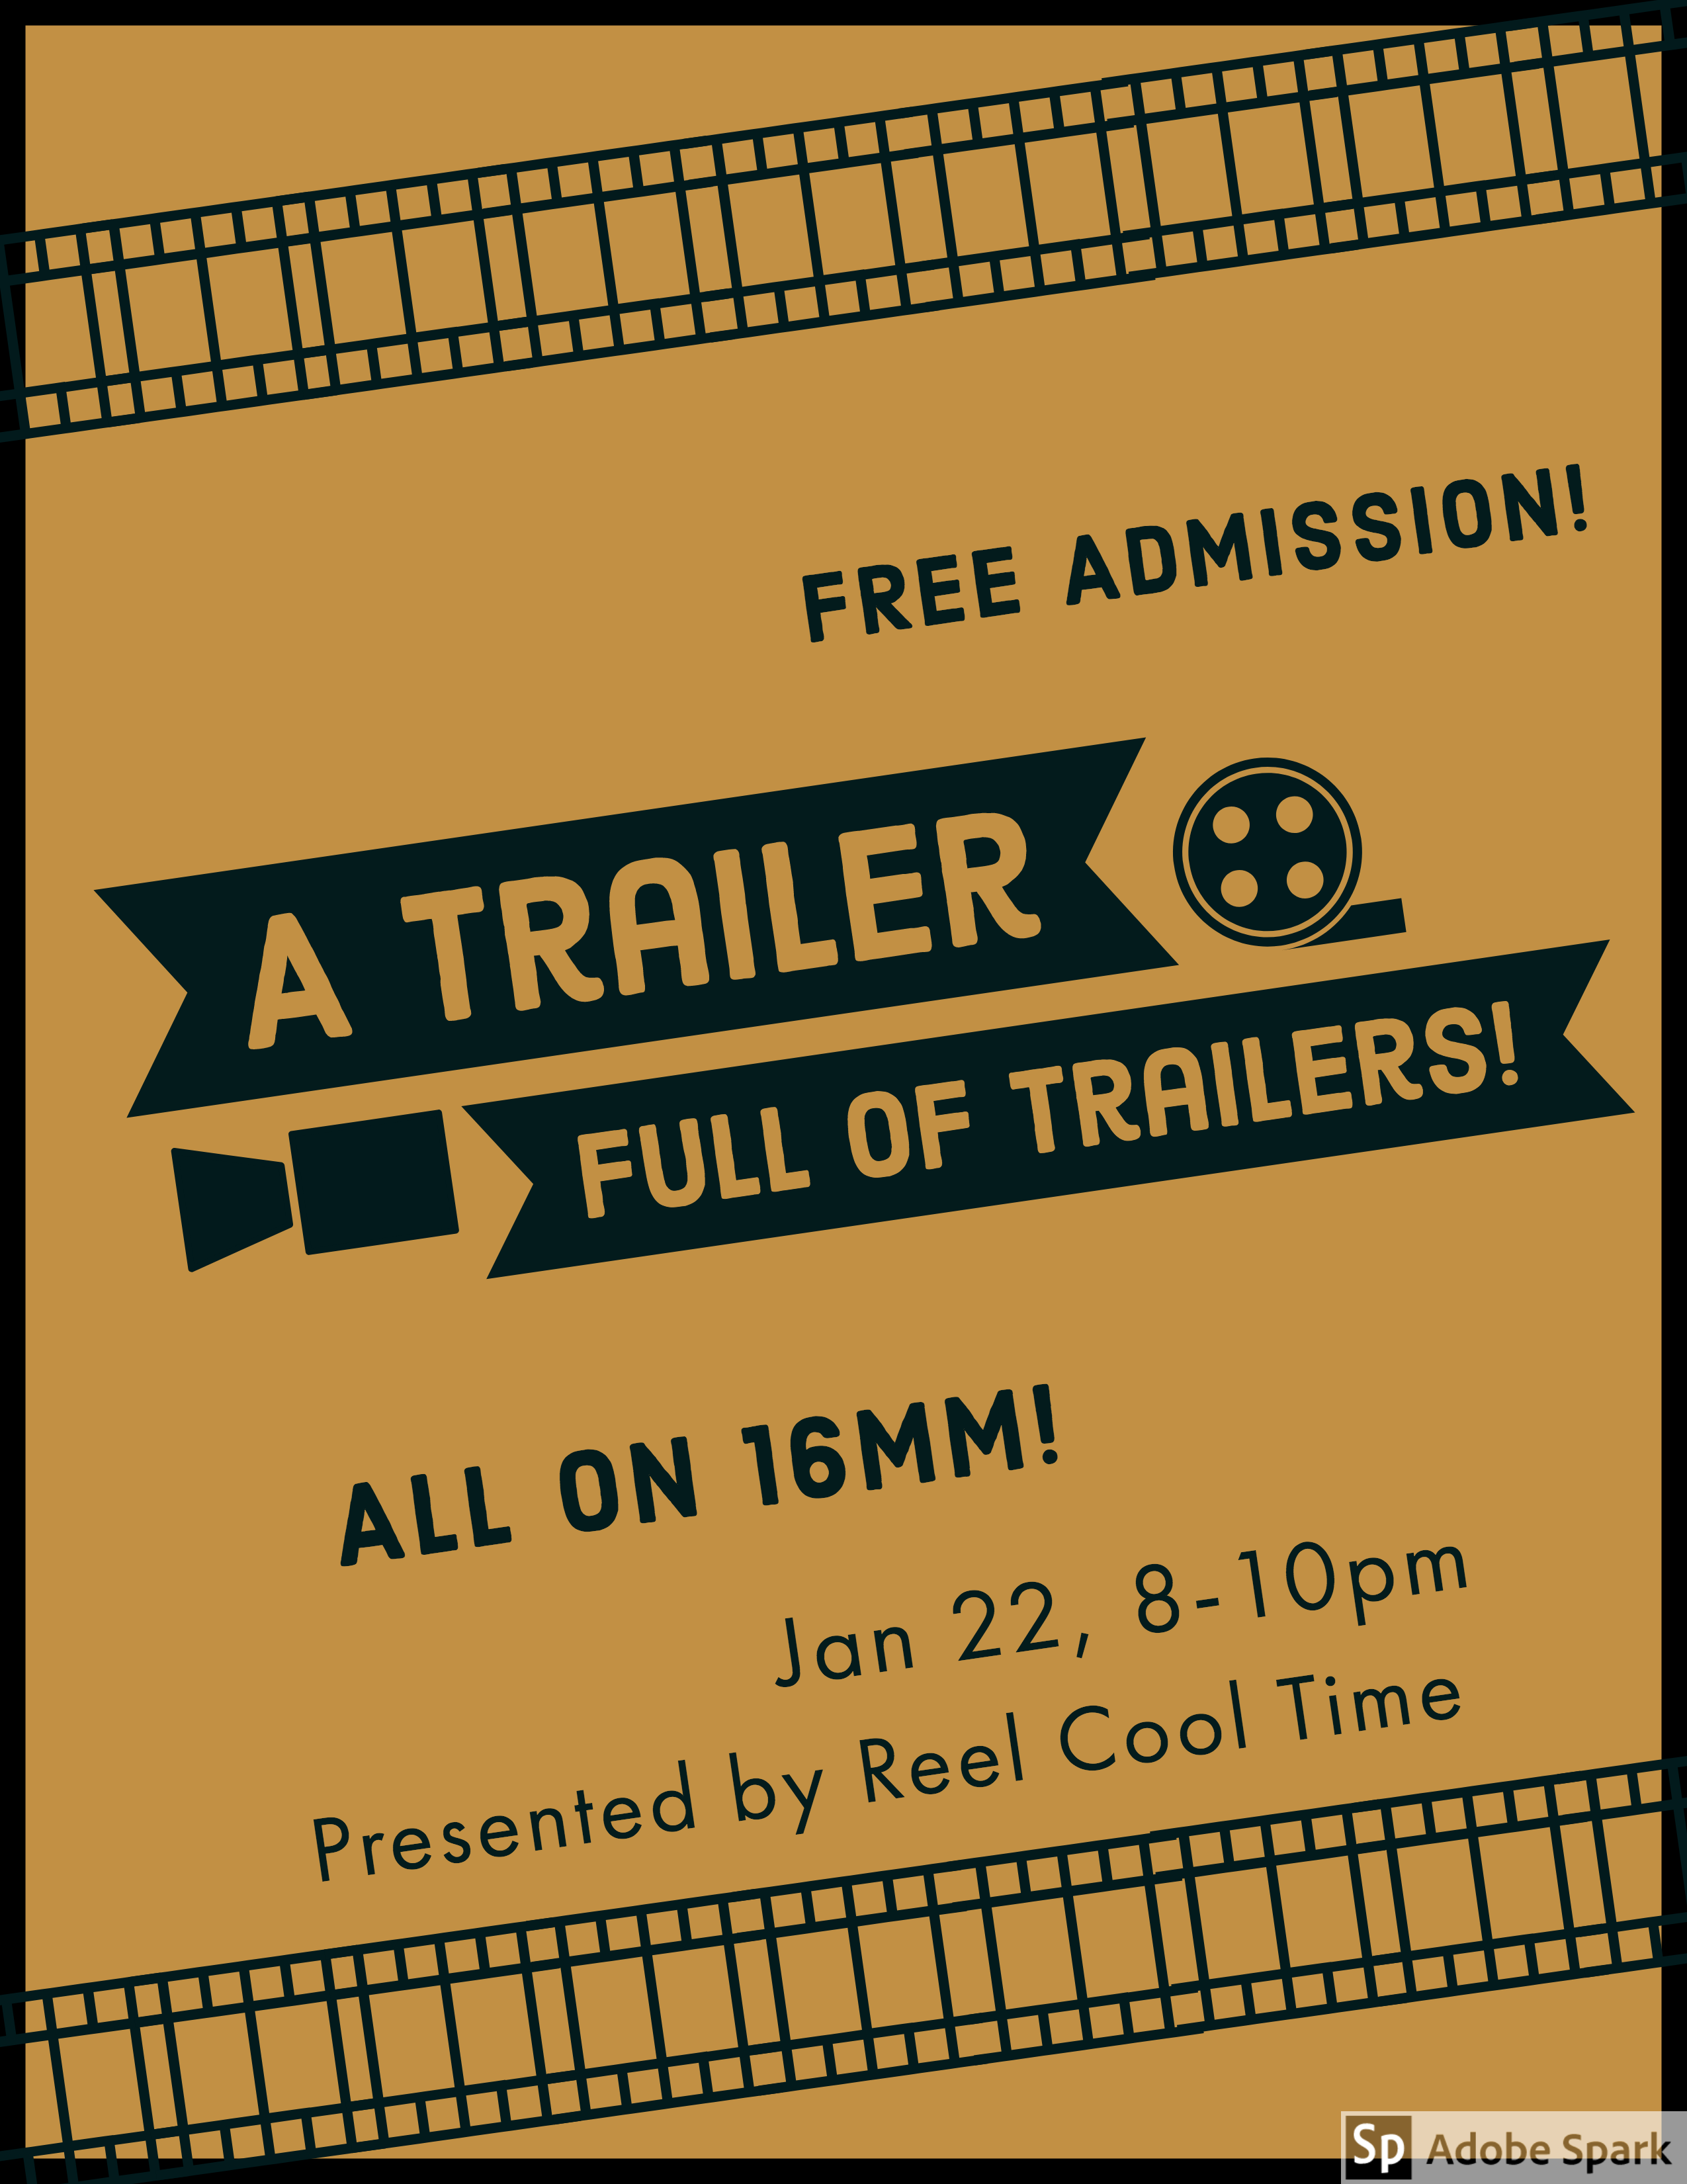 Poster for A Trailer Full of Trailers